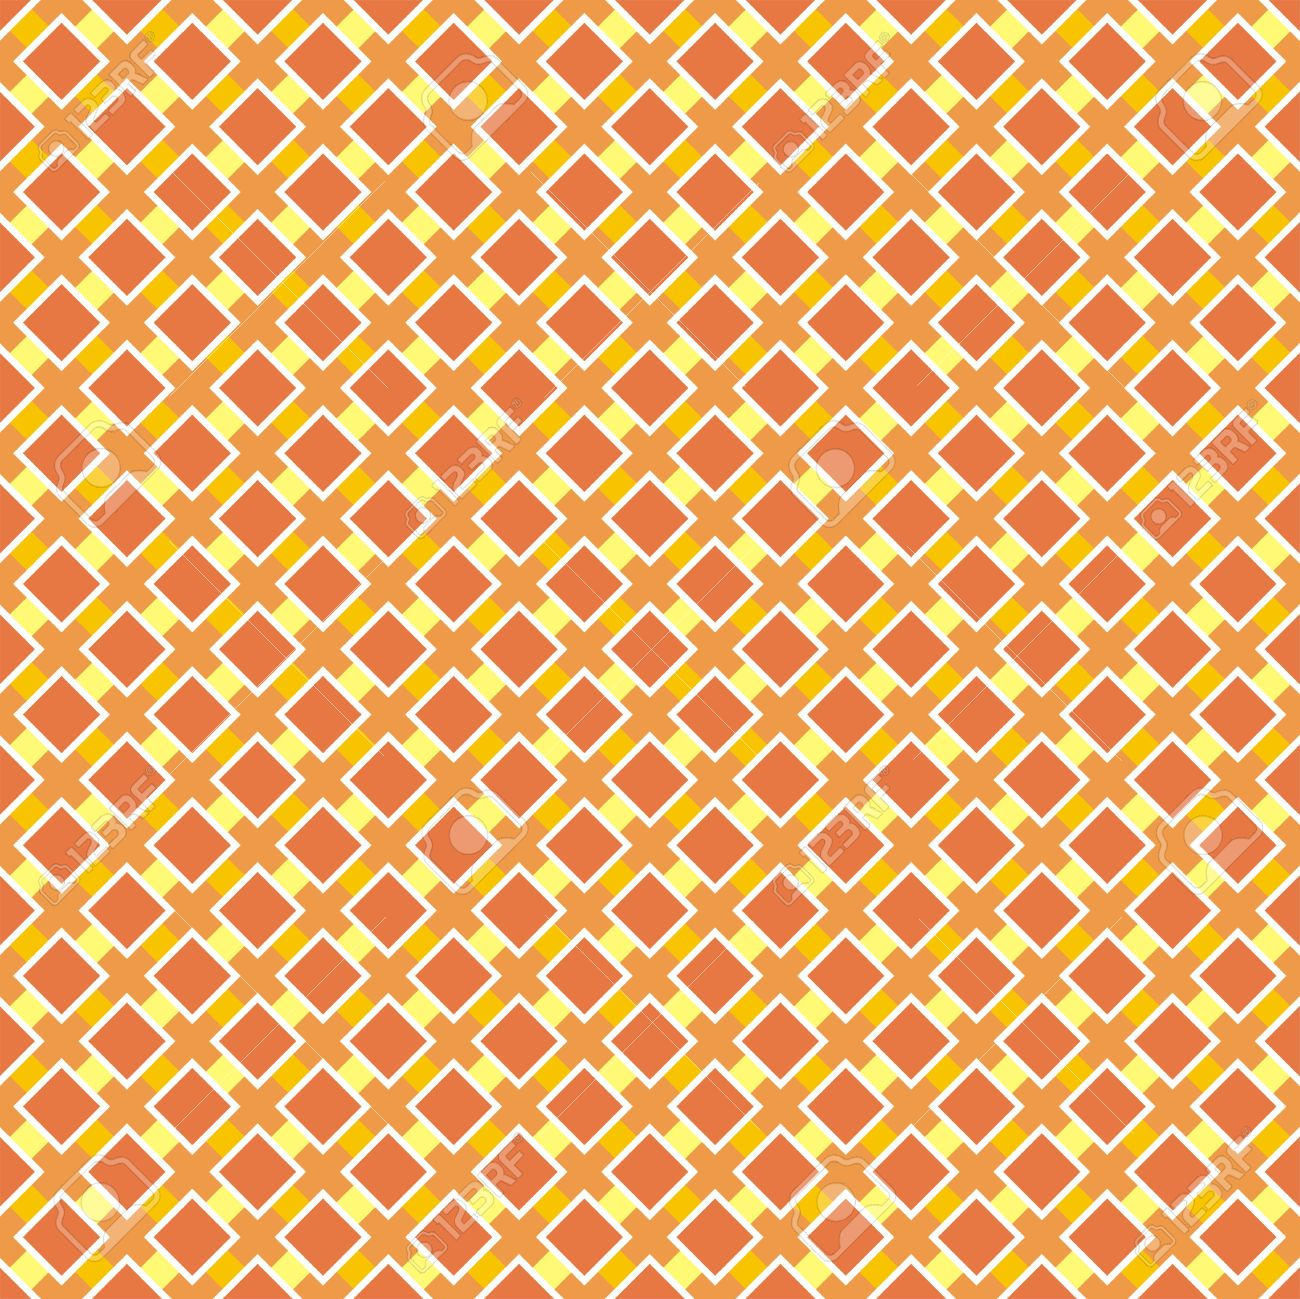 Vector background for website wallpaper desktop invitations banco de imagens vector background for website wallpaper desktop invitations wedding or birthday card and scrapbook seamless retro pattern in yellow junglespirit Choice Image